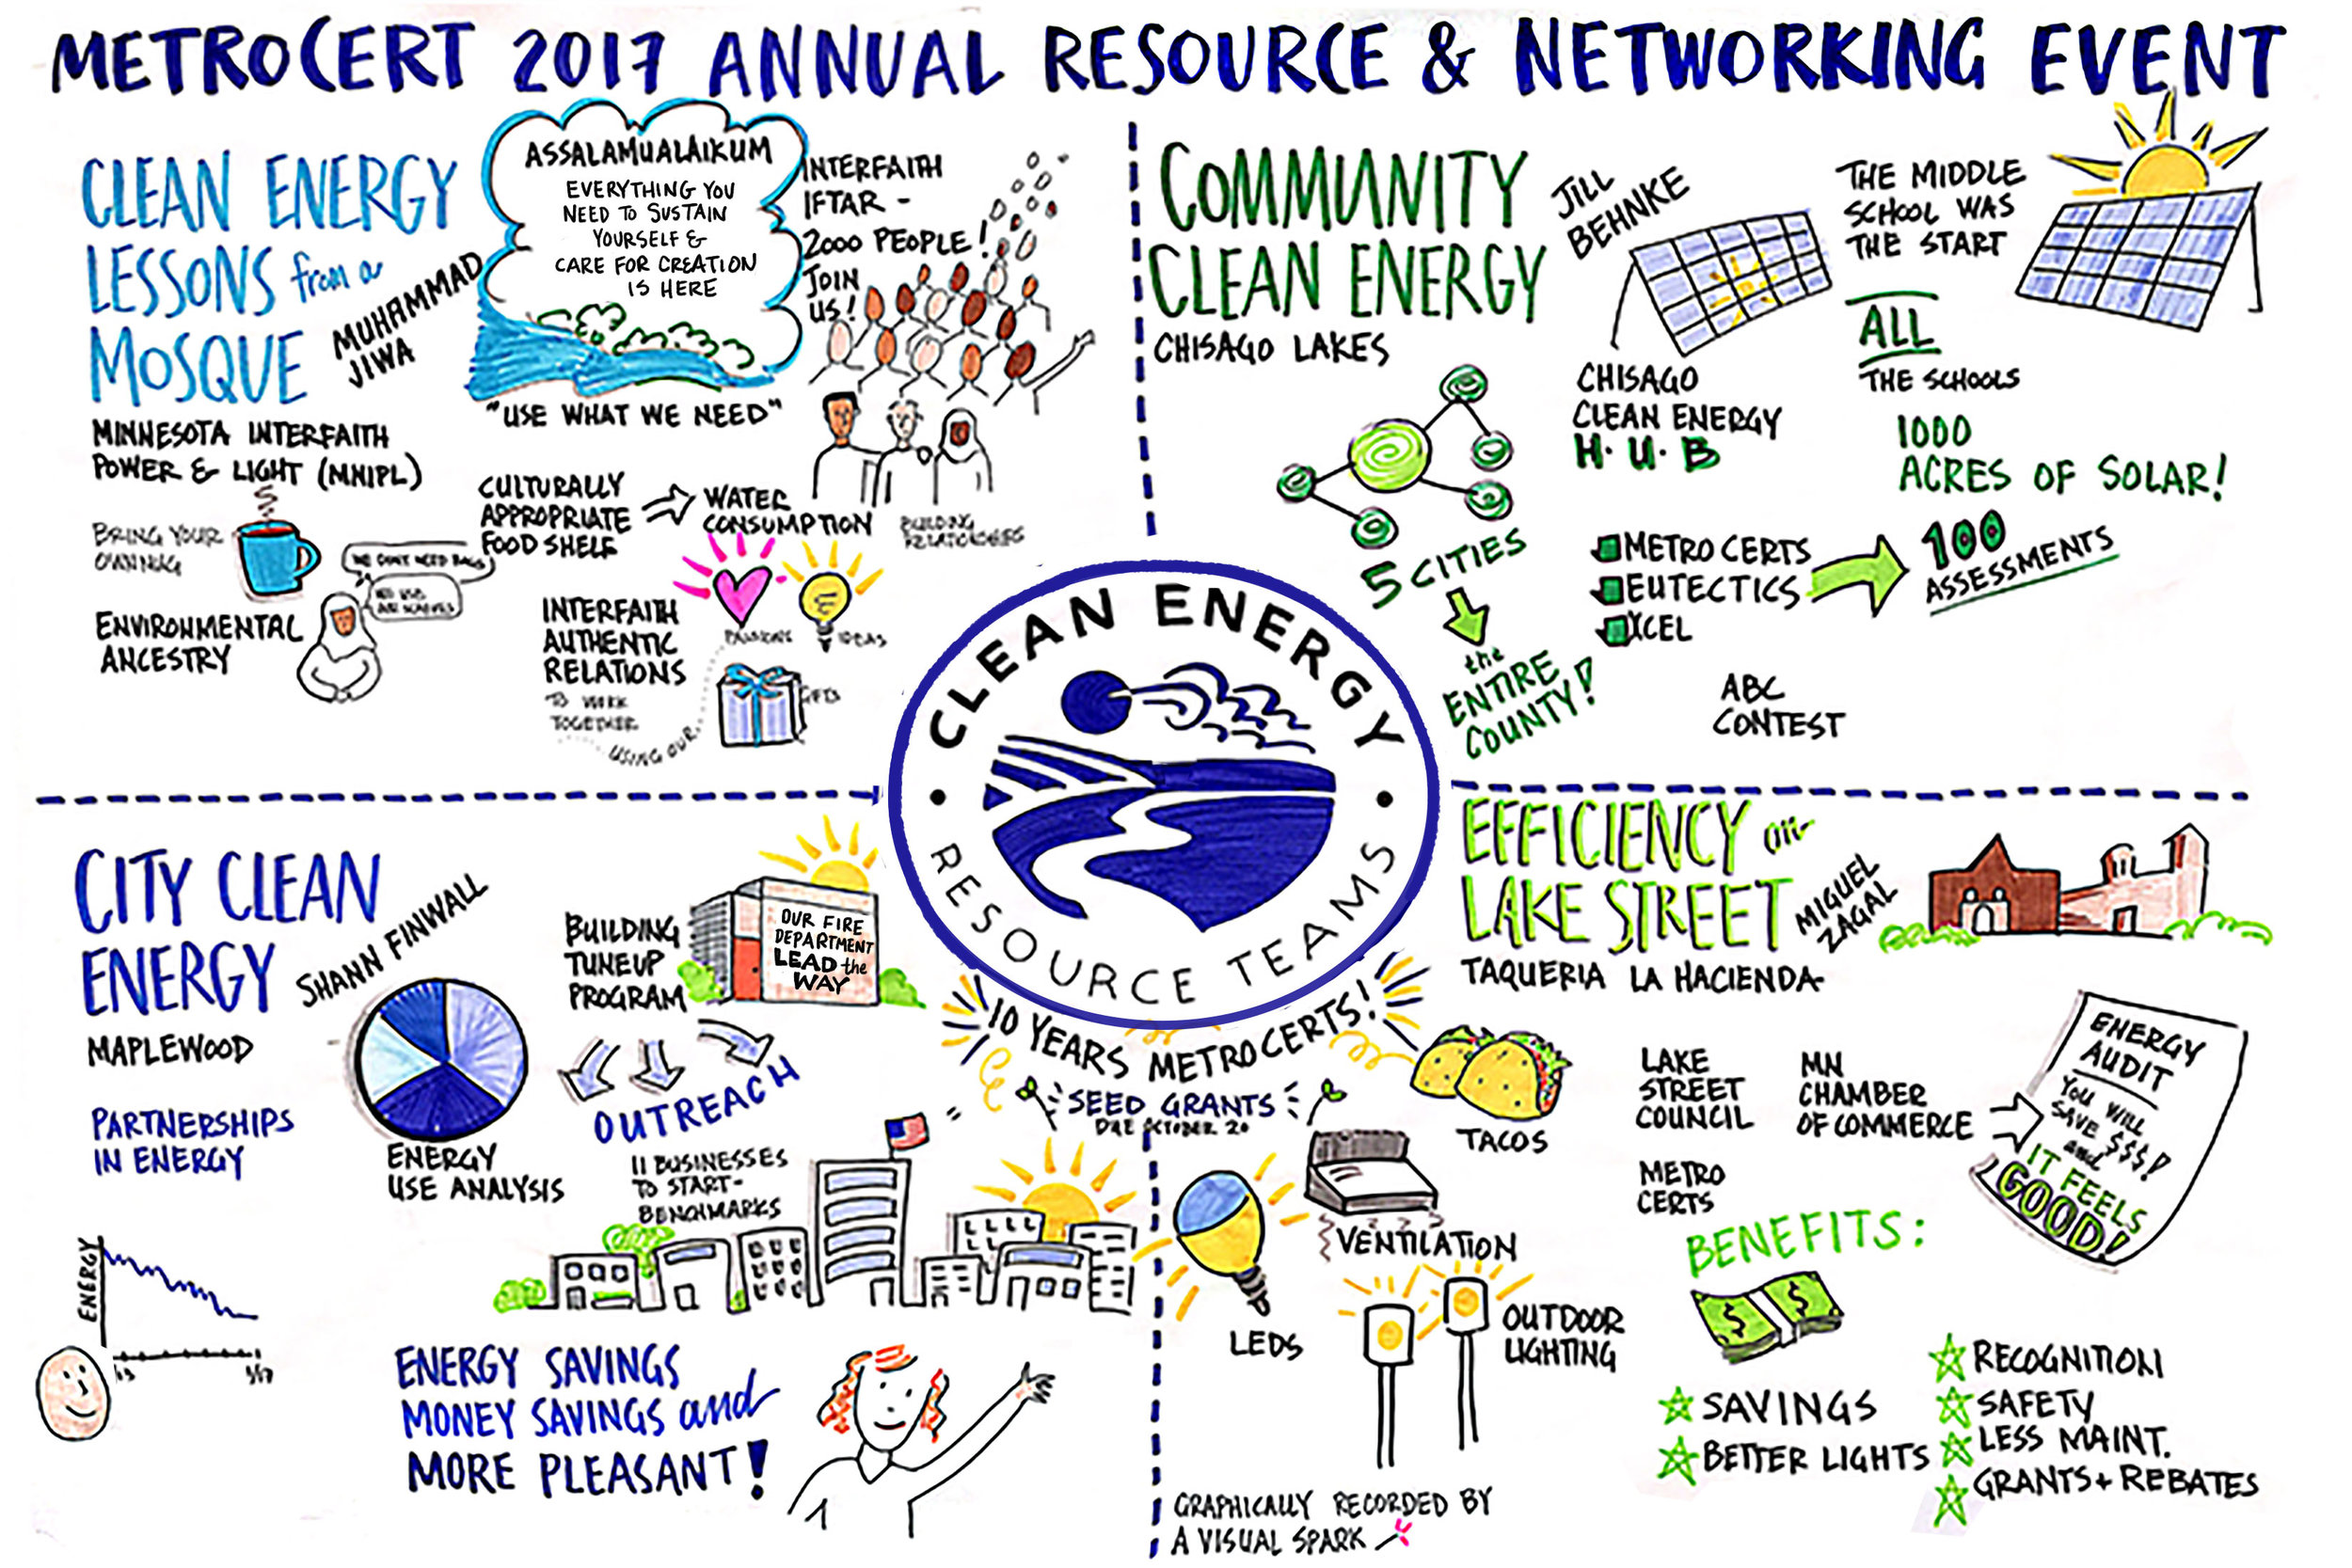 2017 Graphic recording MetroCERT copy.jpg